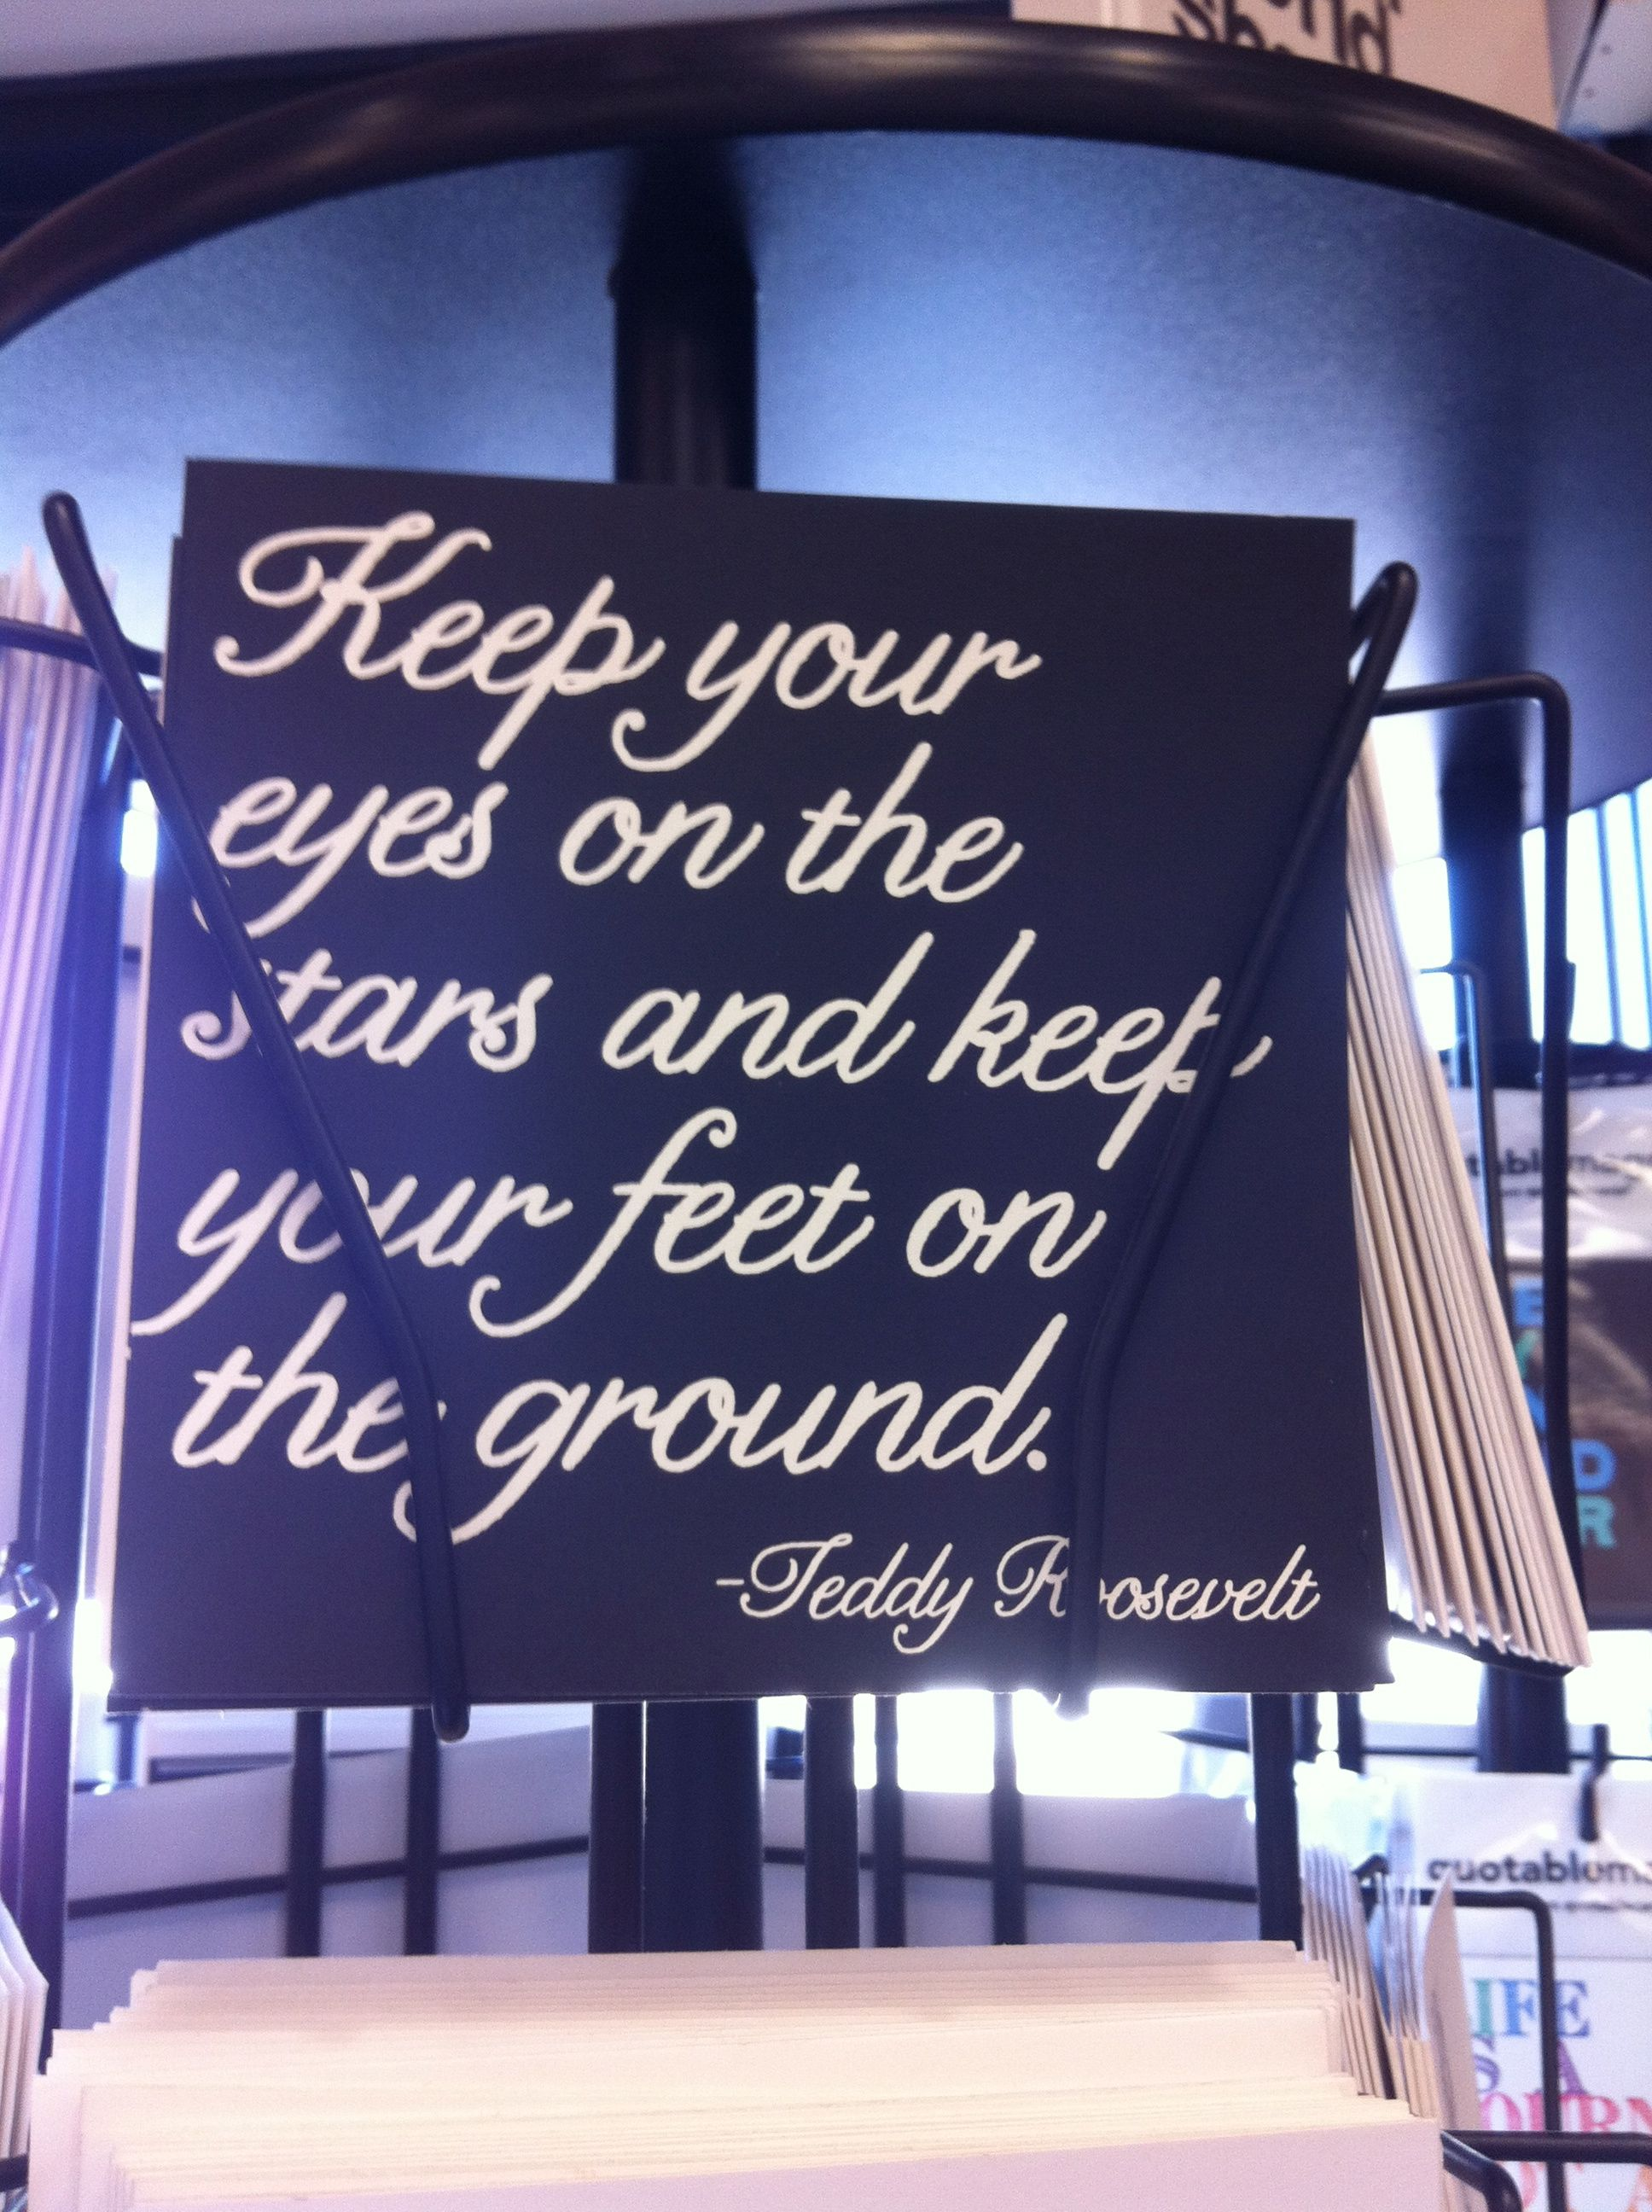 Keep looking up for your help, and your feet will remain on solid ground.